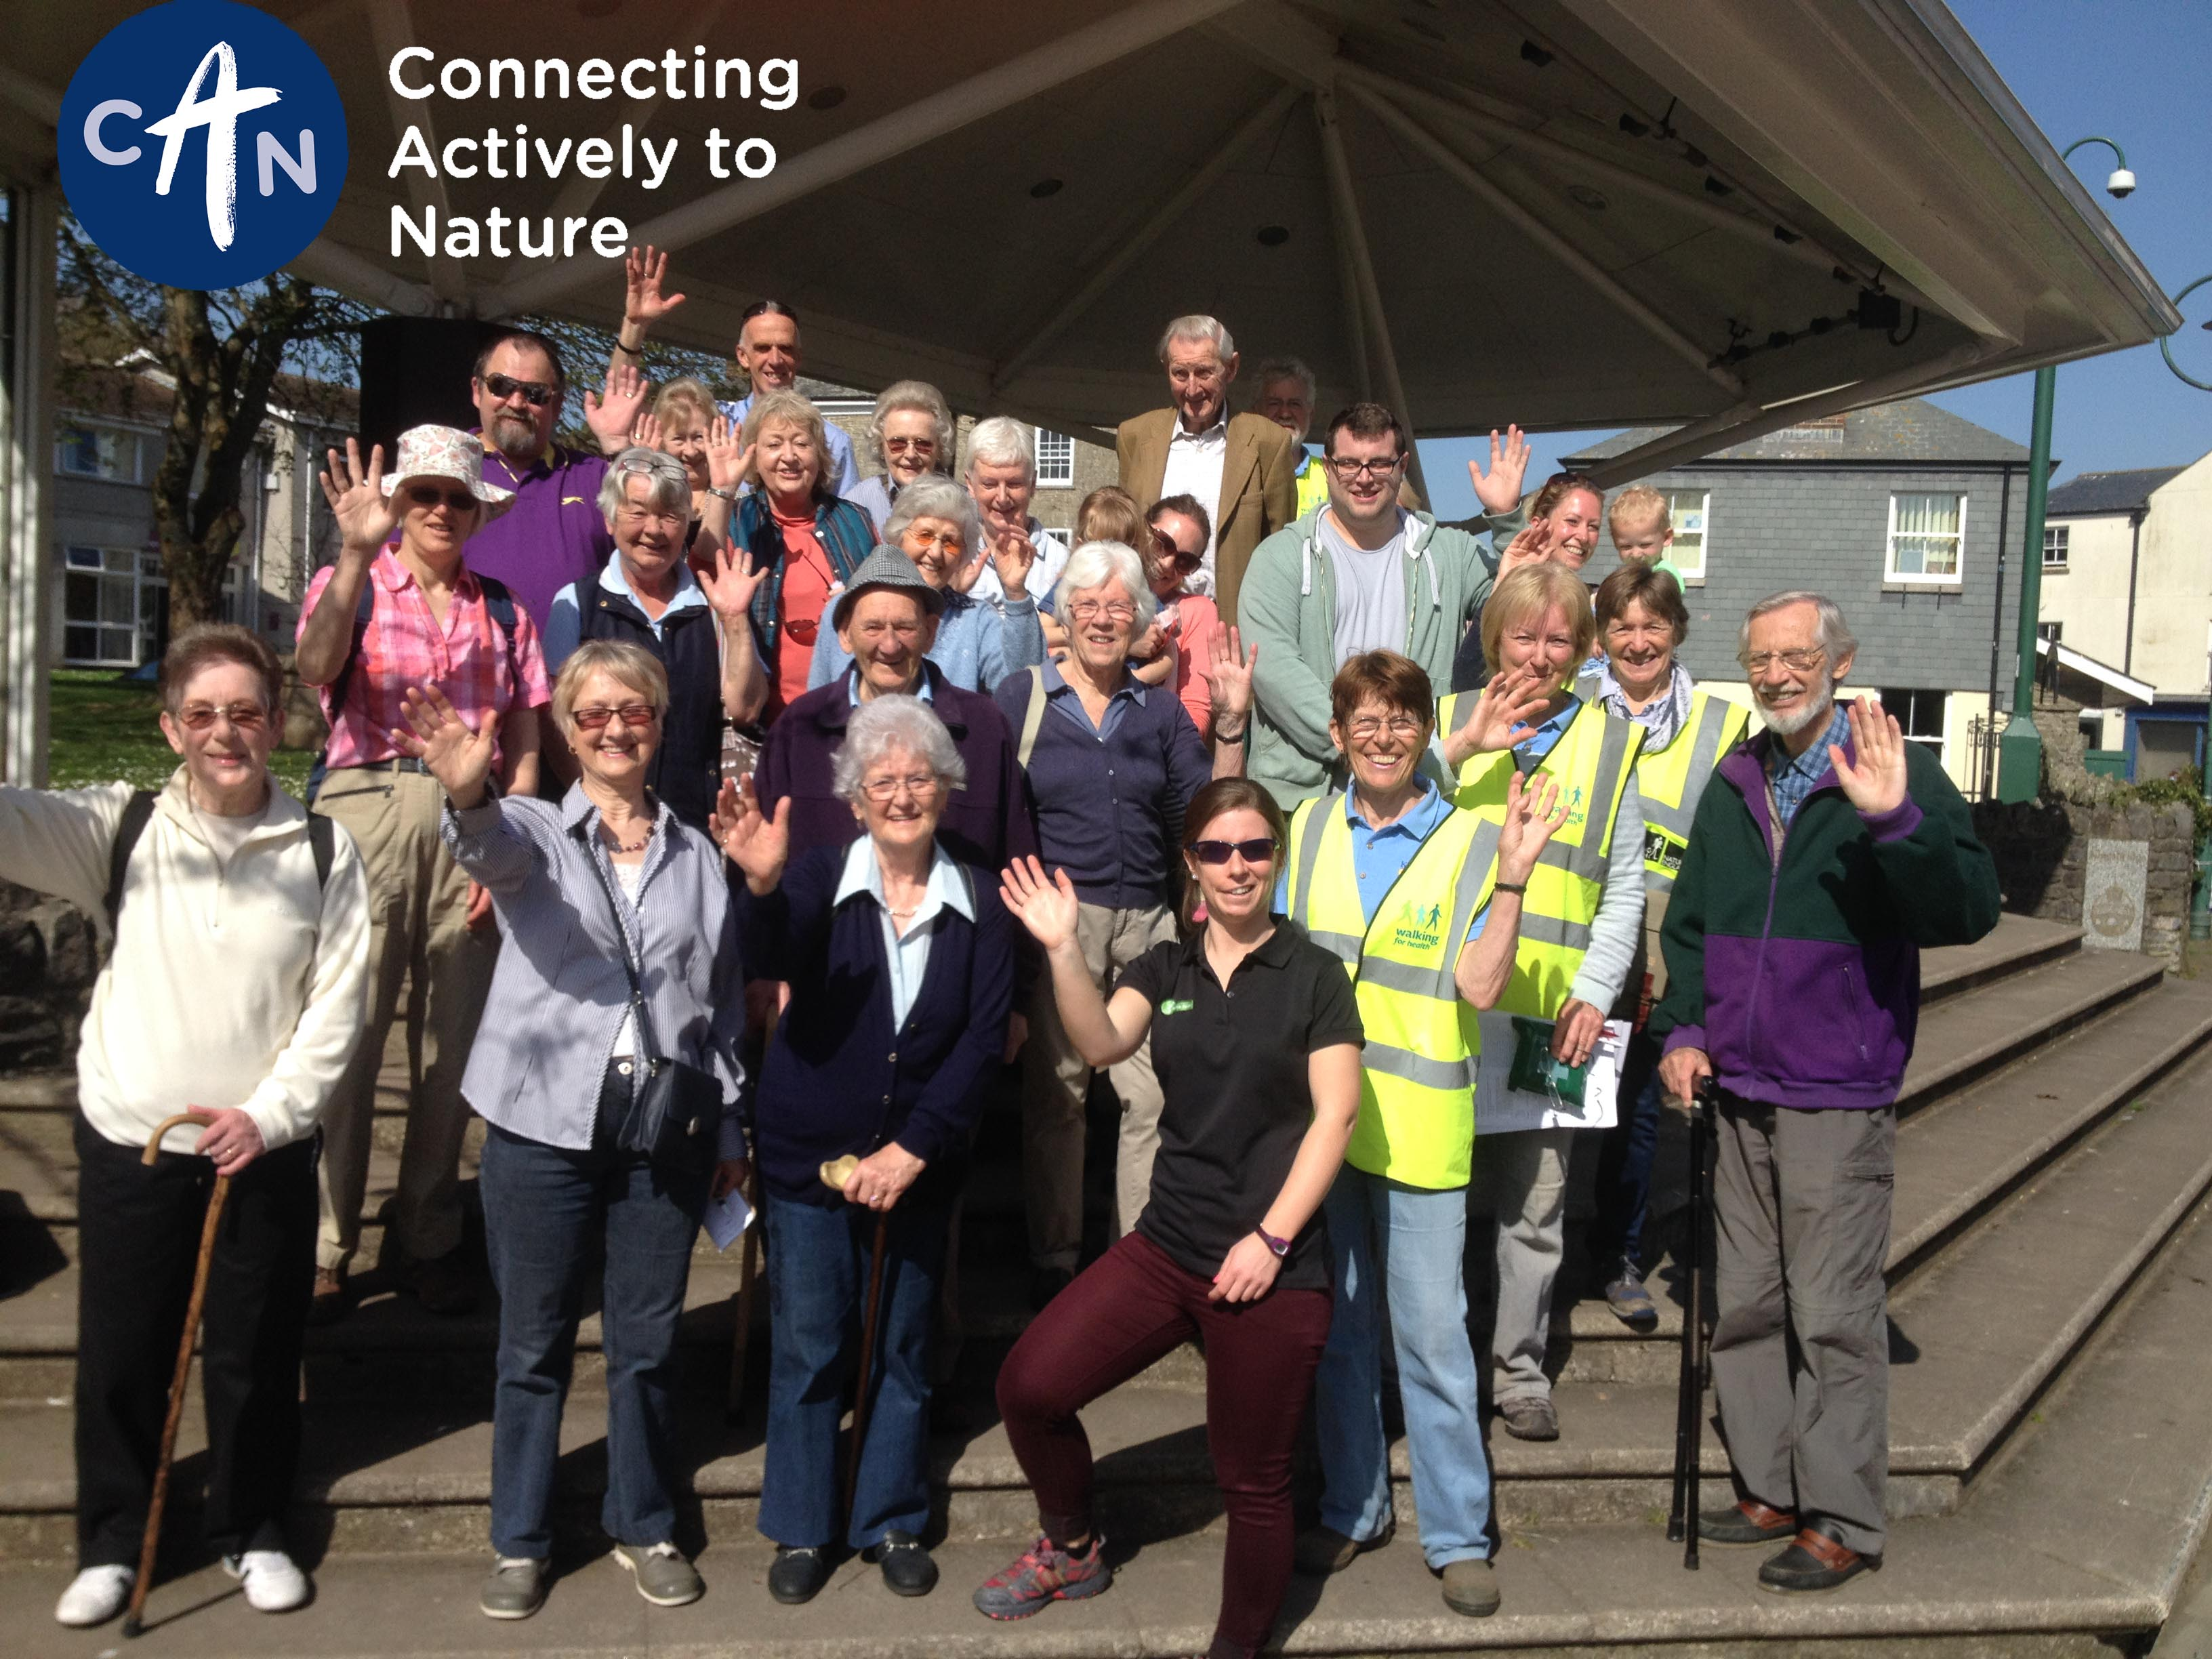 group of older people ready to go on a walk